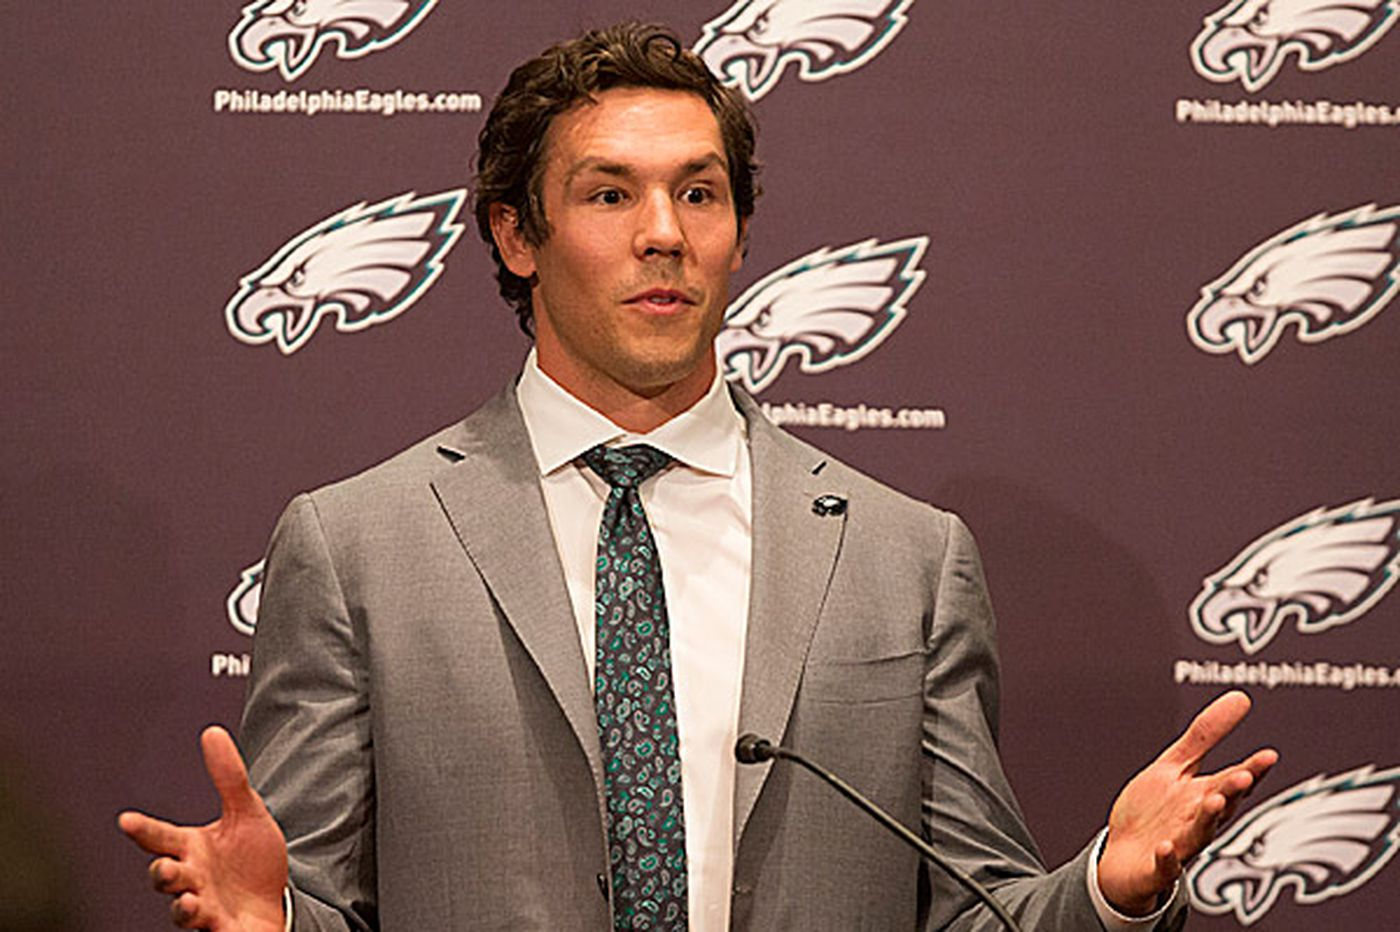 Kelly confident in new Eagles QB Bradford's upside